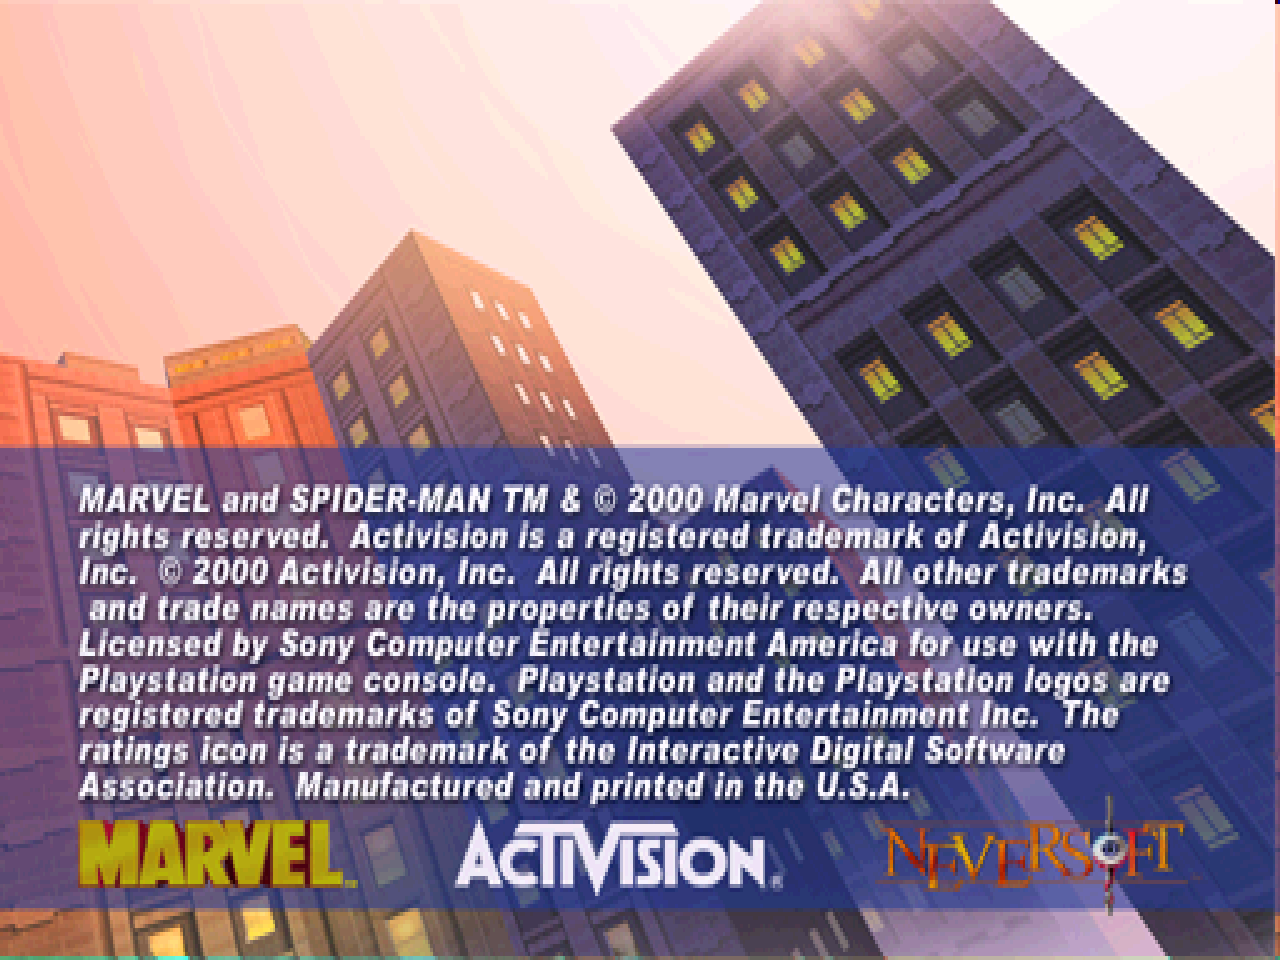 https://s3.eu-west-3.amazonaws.com/games.anthony-dessalles.com/Spider-Man PS1 2020 - Screenshots/Spider-Man-201125-182559.png